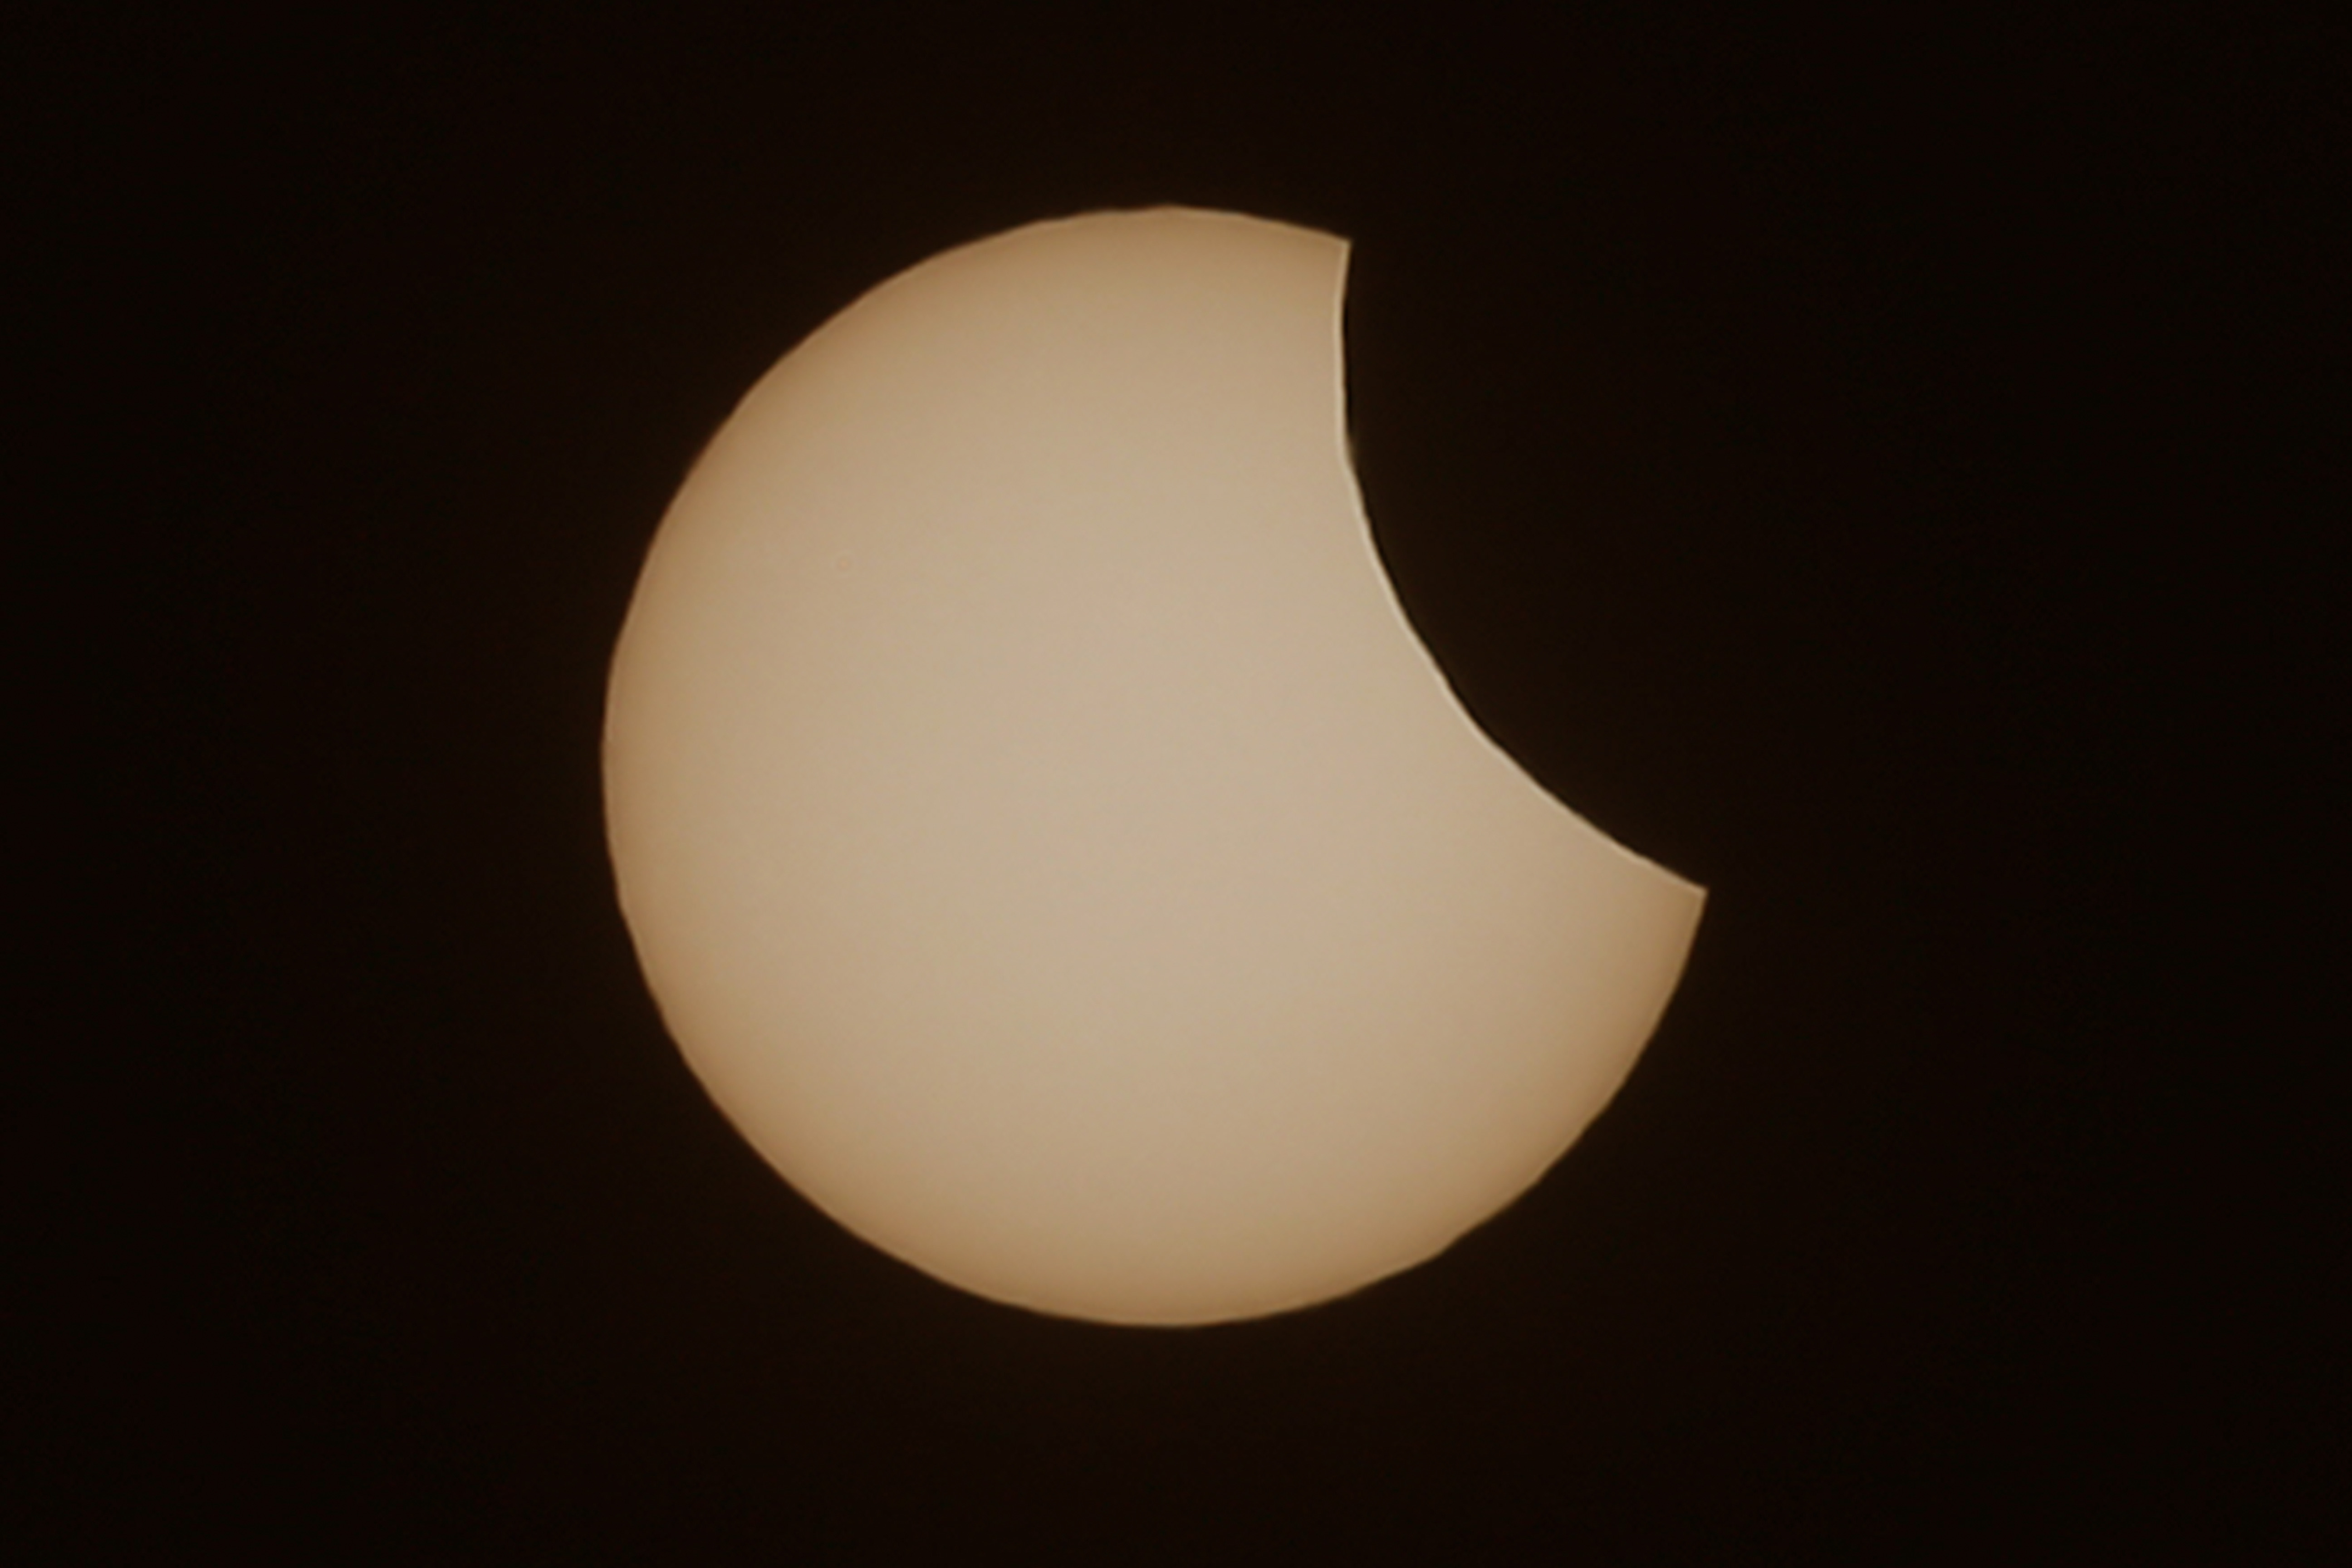 MUNICH, GERMANY - MARCH 20: The sun is pictured during a partial solar eclipse on March 20, 2015 in Muncih, Germany.